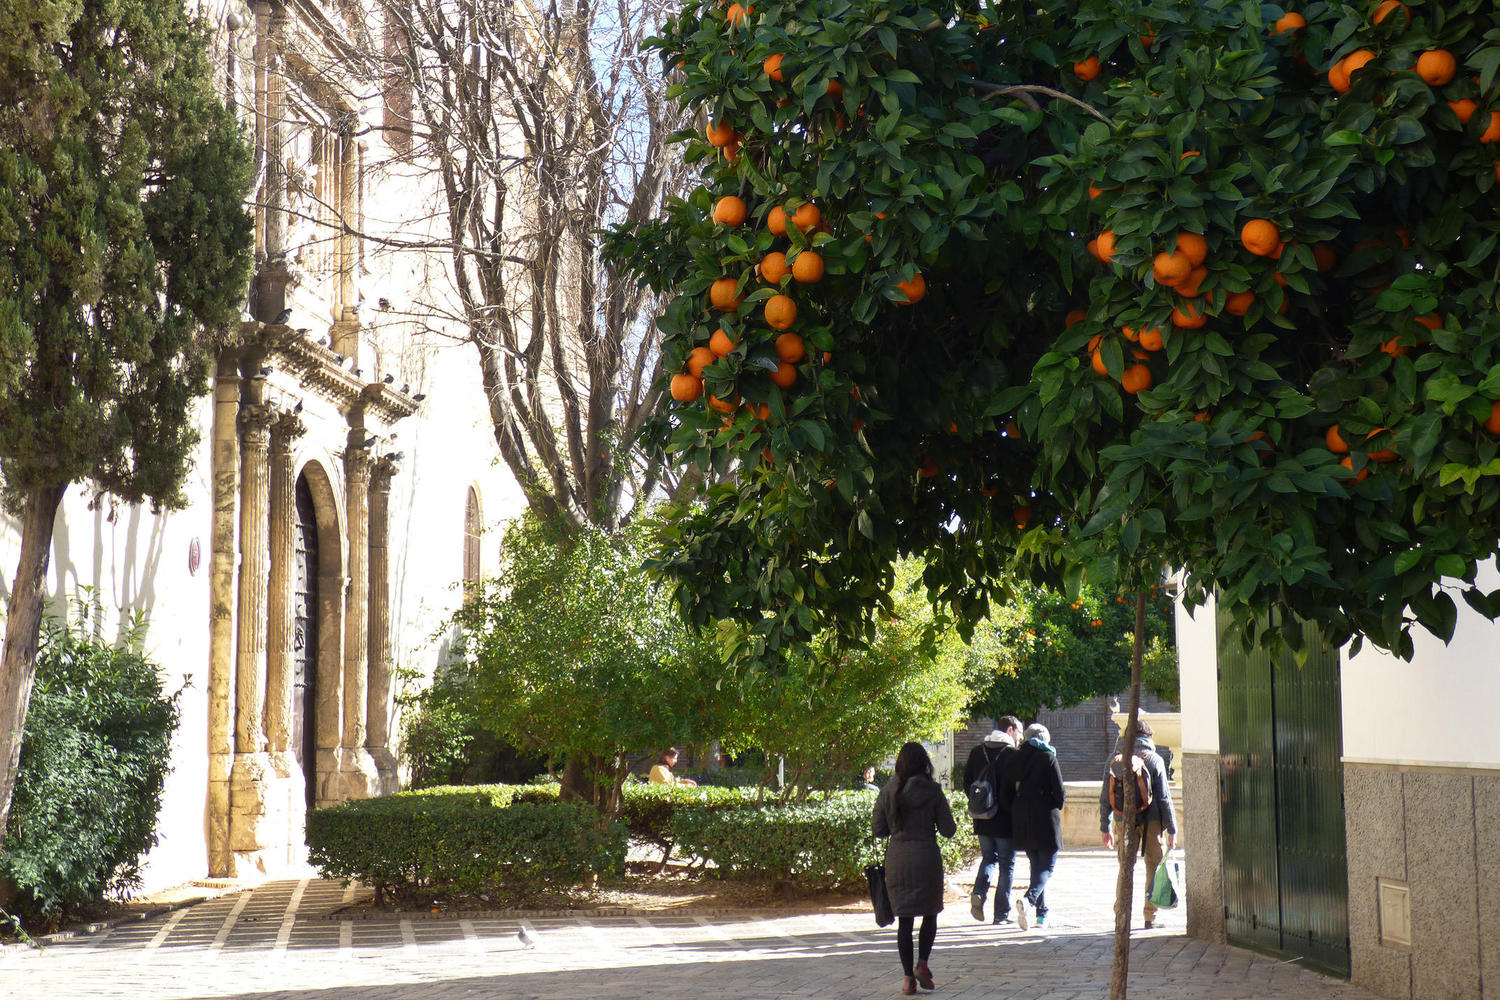 Walking home from the market in Seville